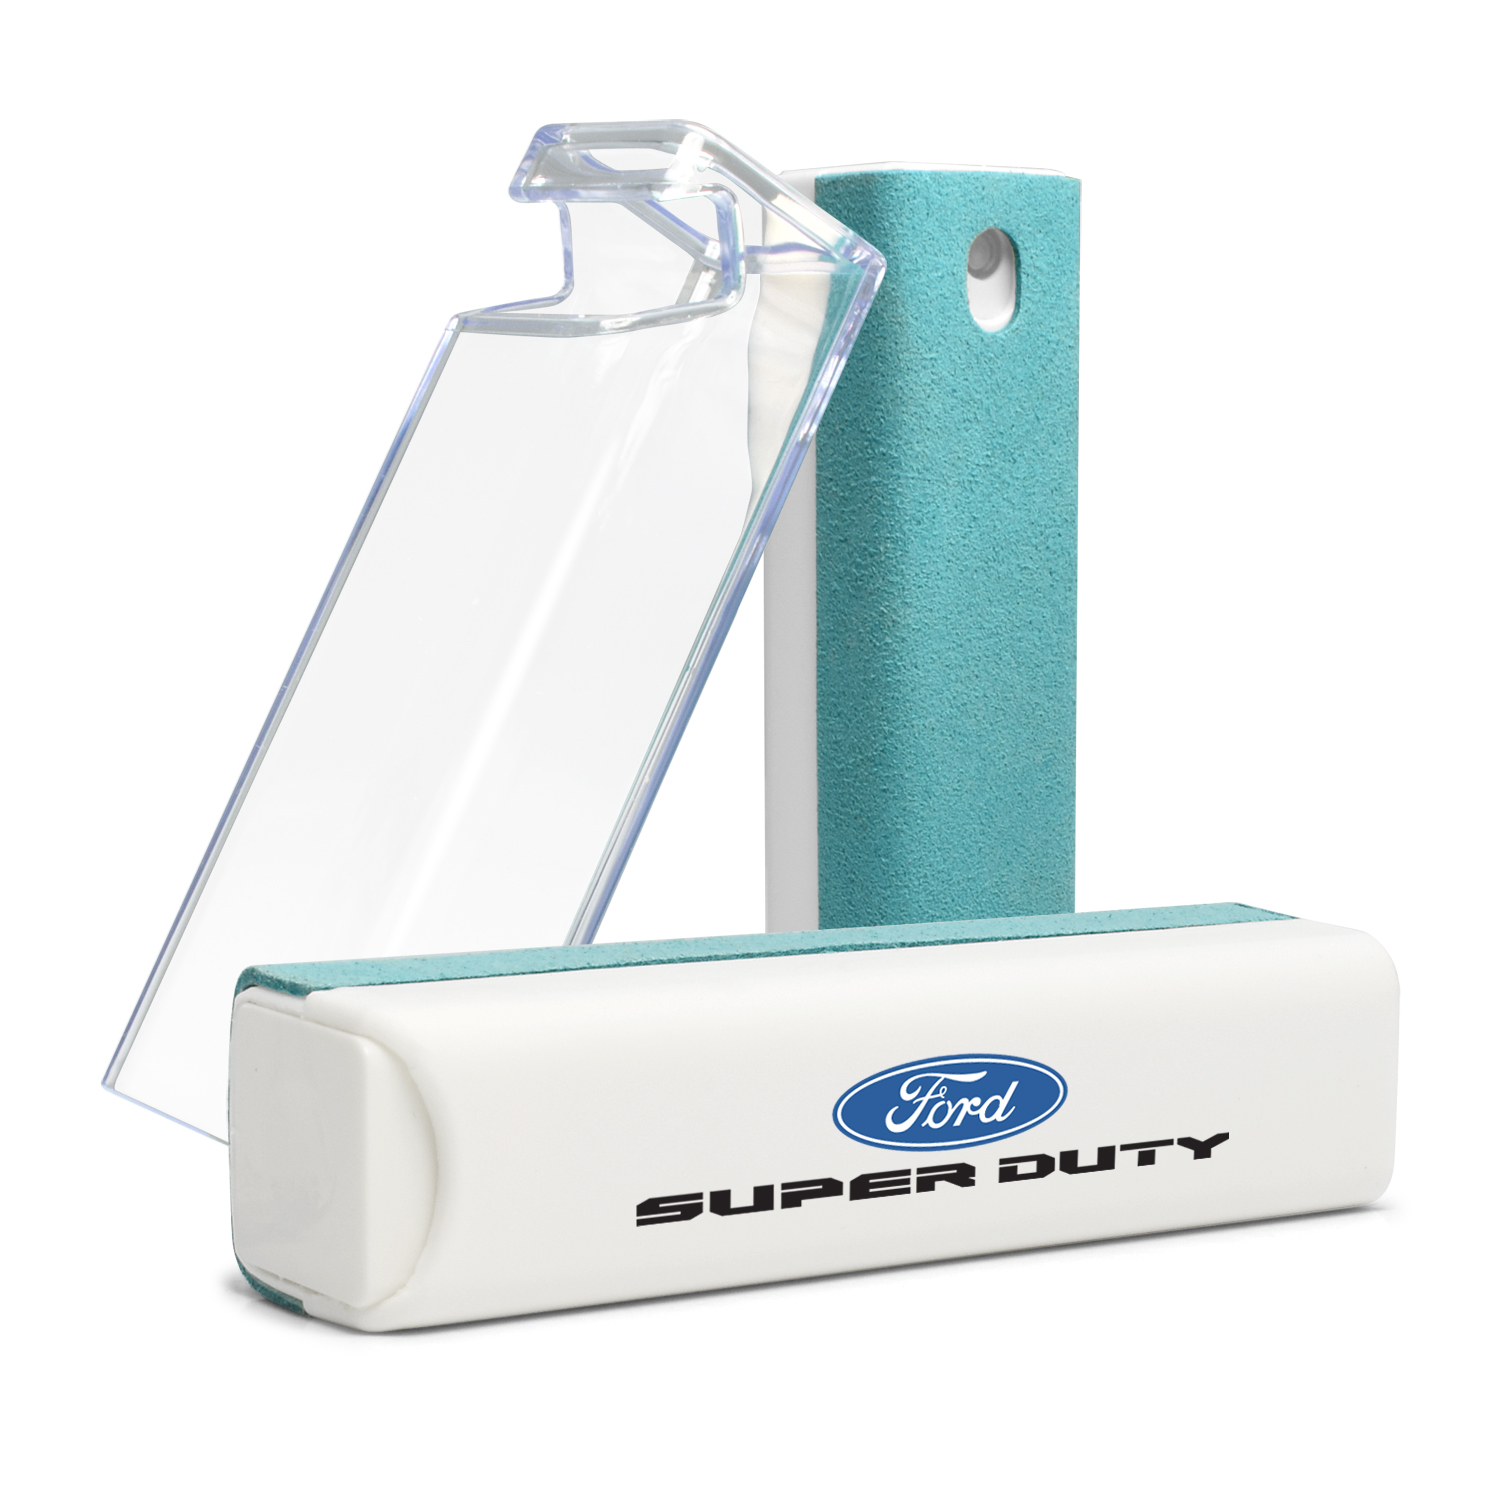 Ford Super-Duty Blue Microfiber Screen Cleaner for Car Navigation, Cell Phone